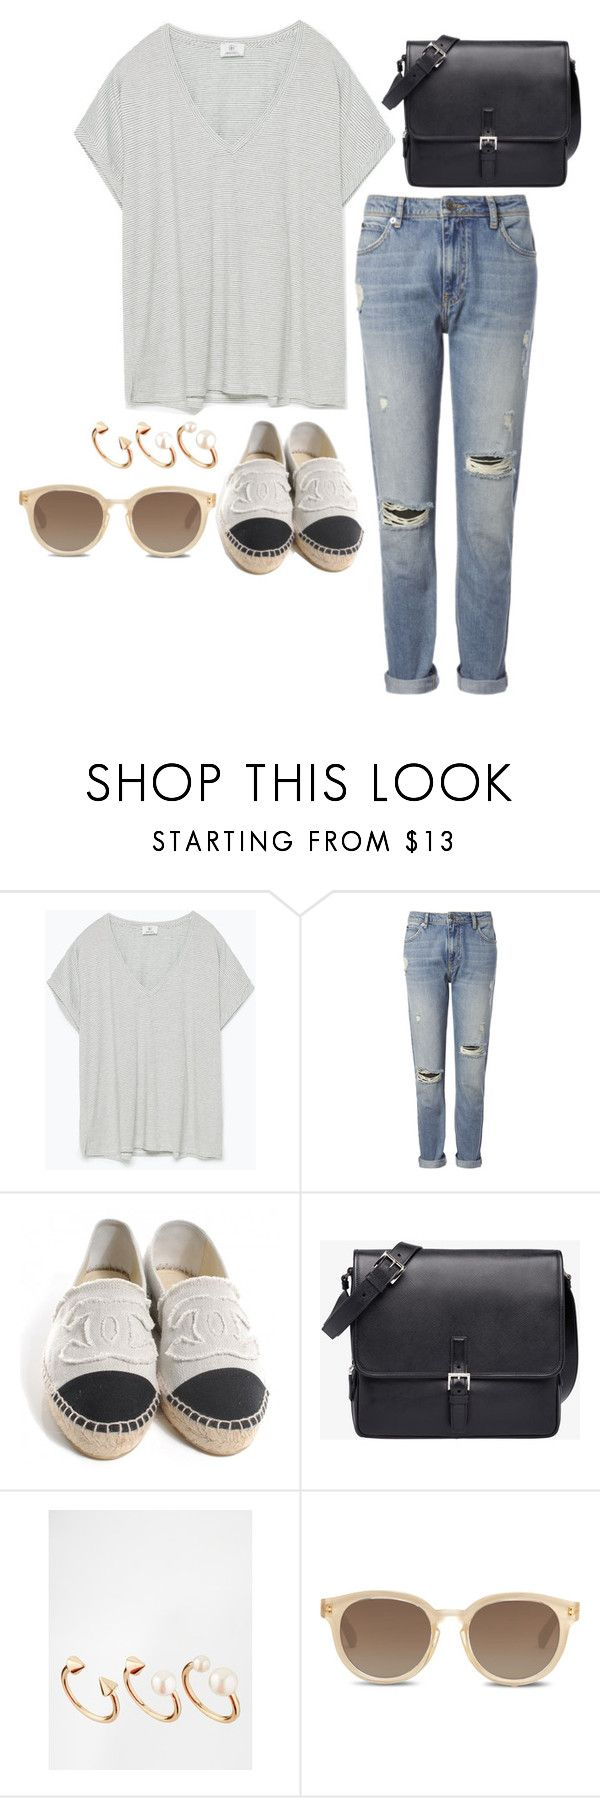 #28 by chelsealyn on Polyvore featuring Zara, Whistles, Chanel, Prada, ASOS and TOMS